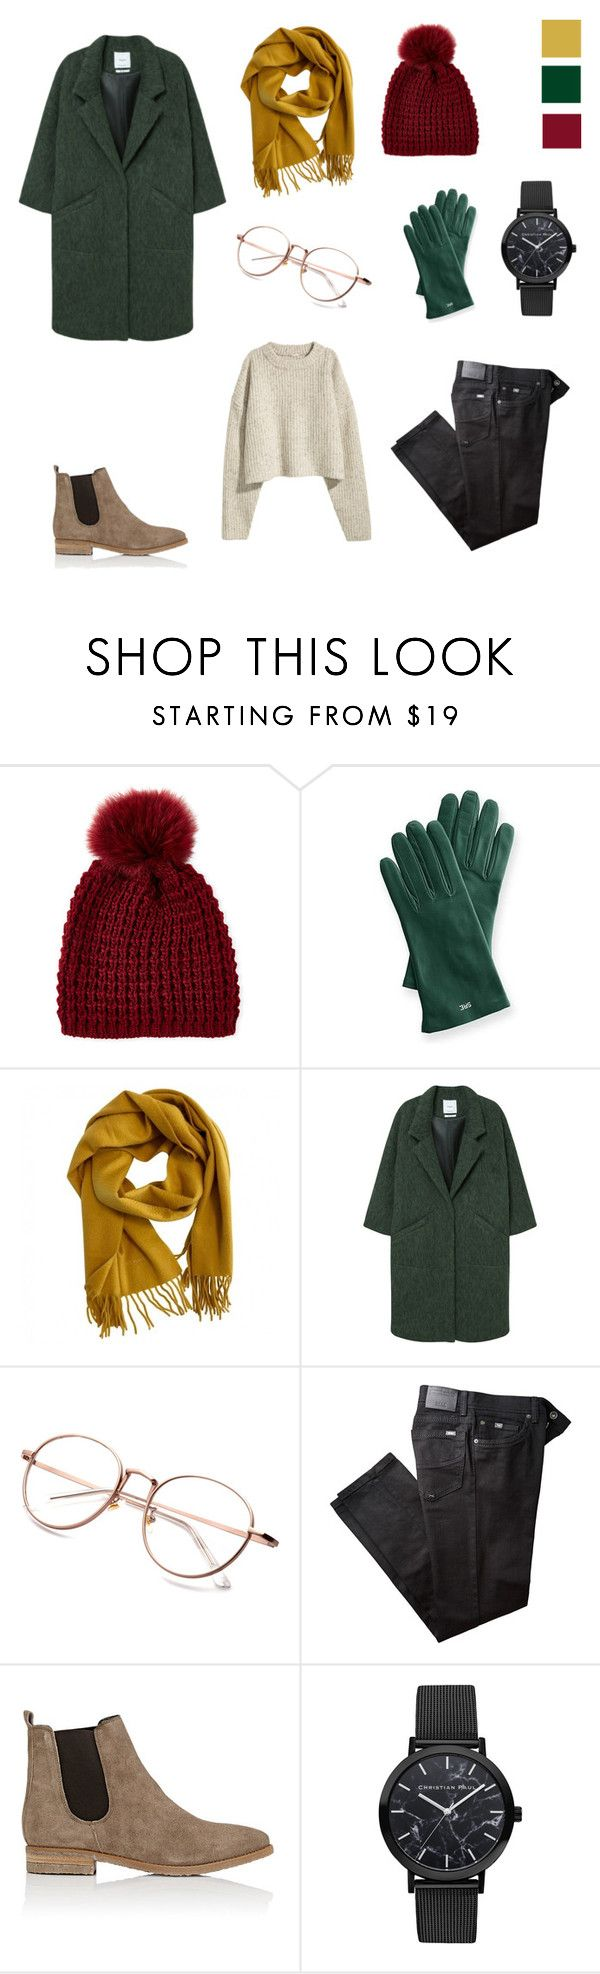 """Winter is coming - individual set."" by sweetlittlebunny on Polyvore featuring moda, Kyi Kyi, Mark & Graham, Hermès, MANGO, BRAX i Barneys New York"